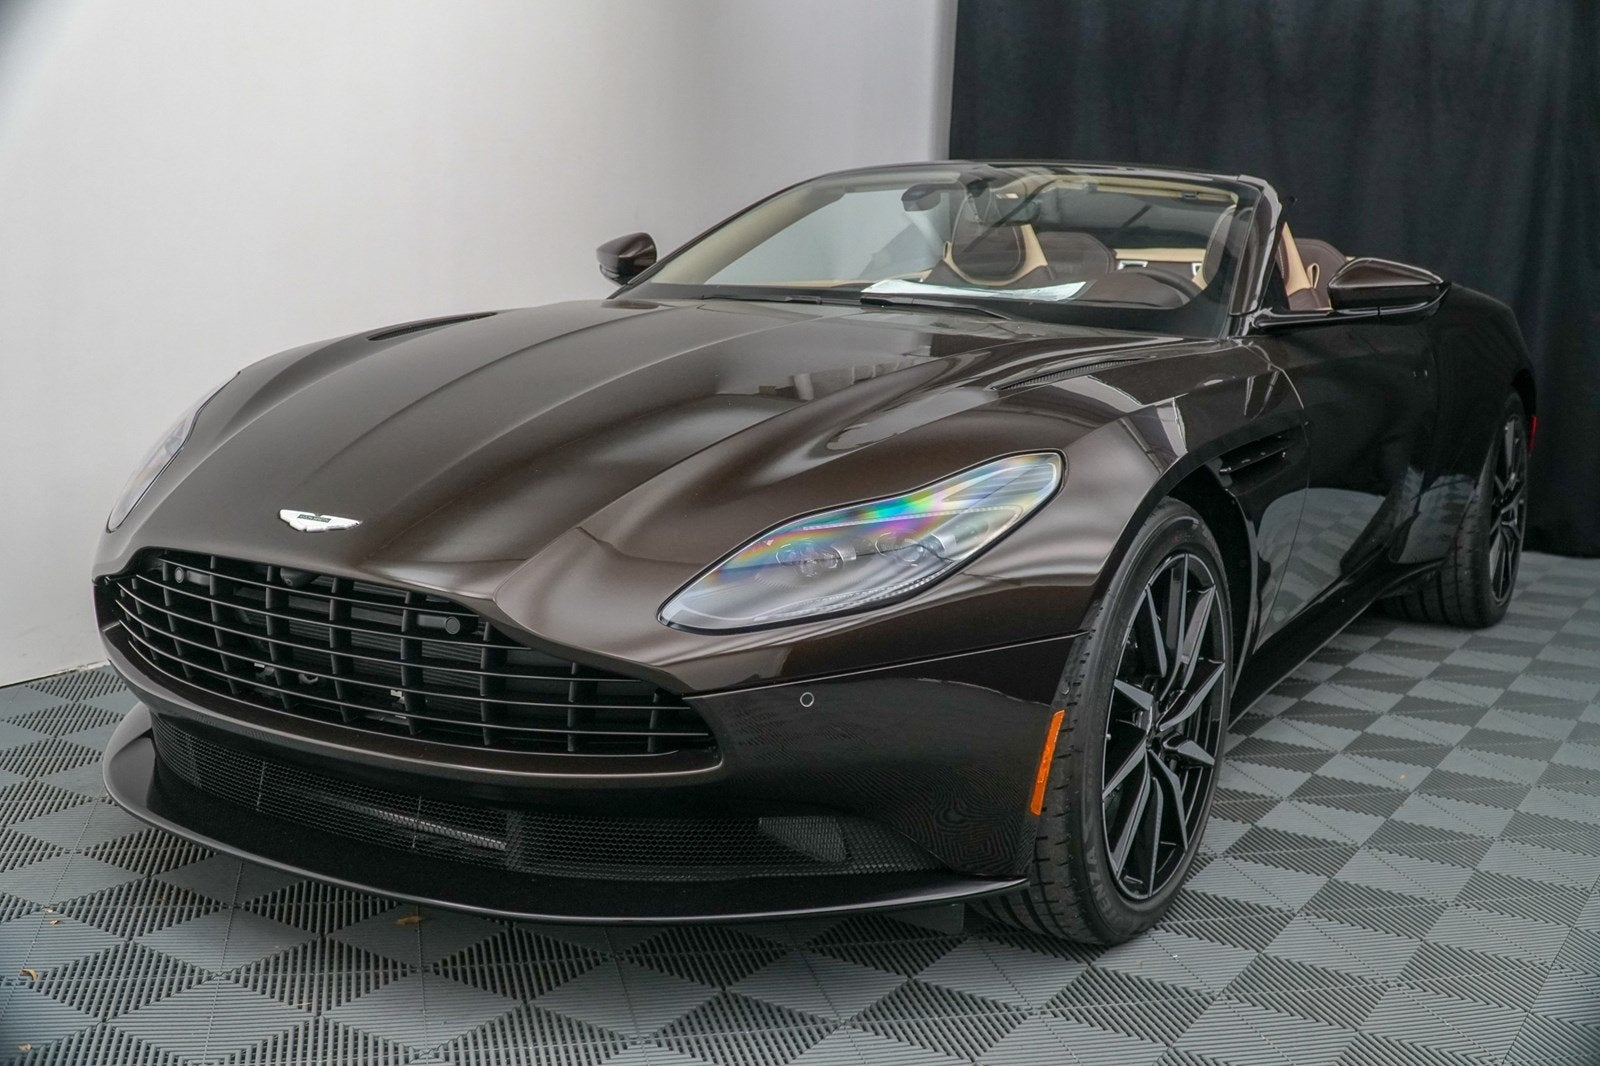 2019 aston martin db11 | foreign cars charlotte specials charlotte, nc